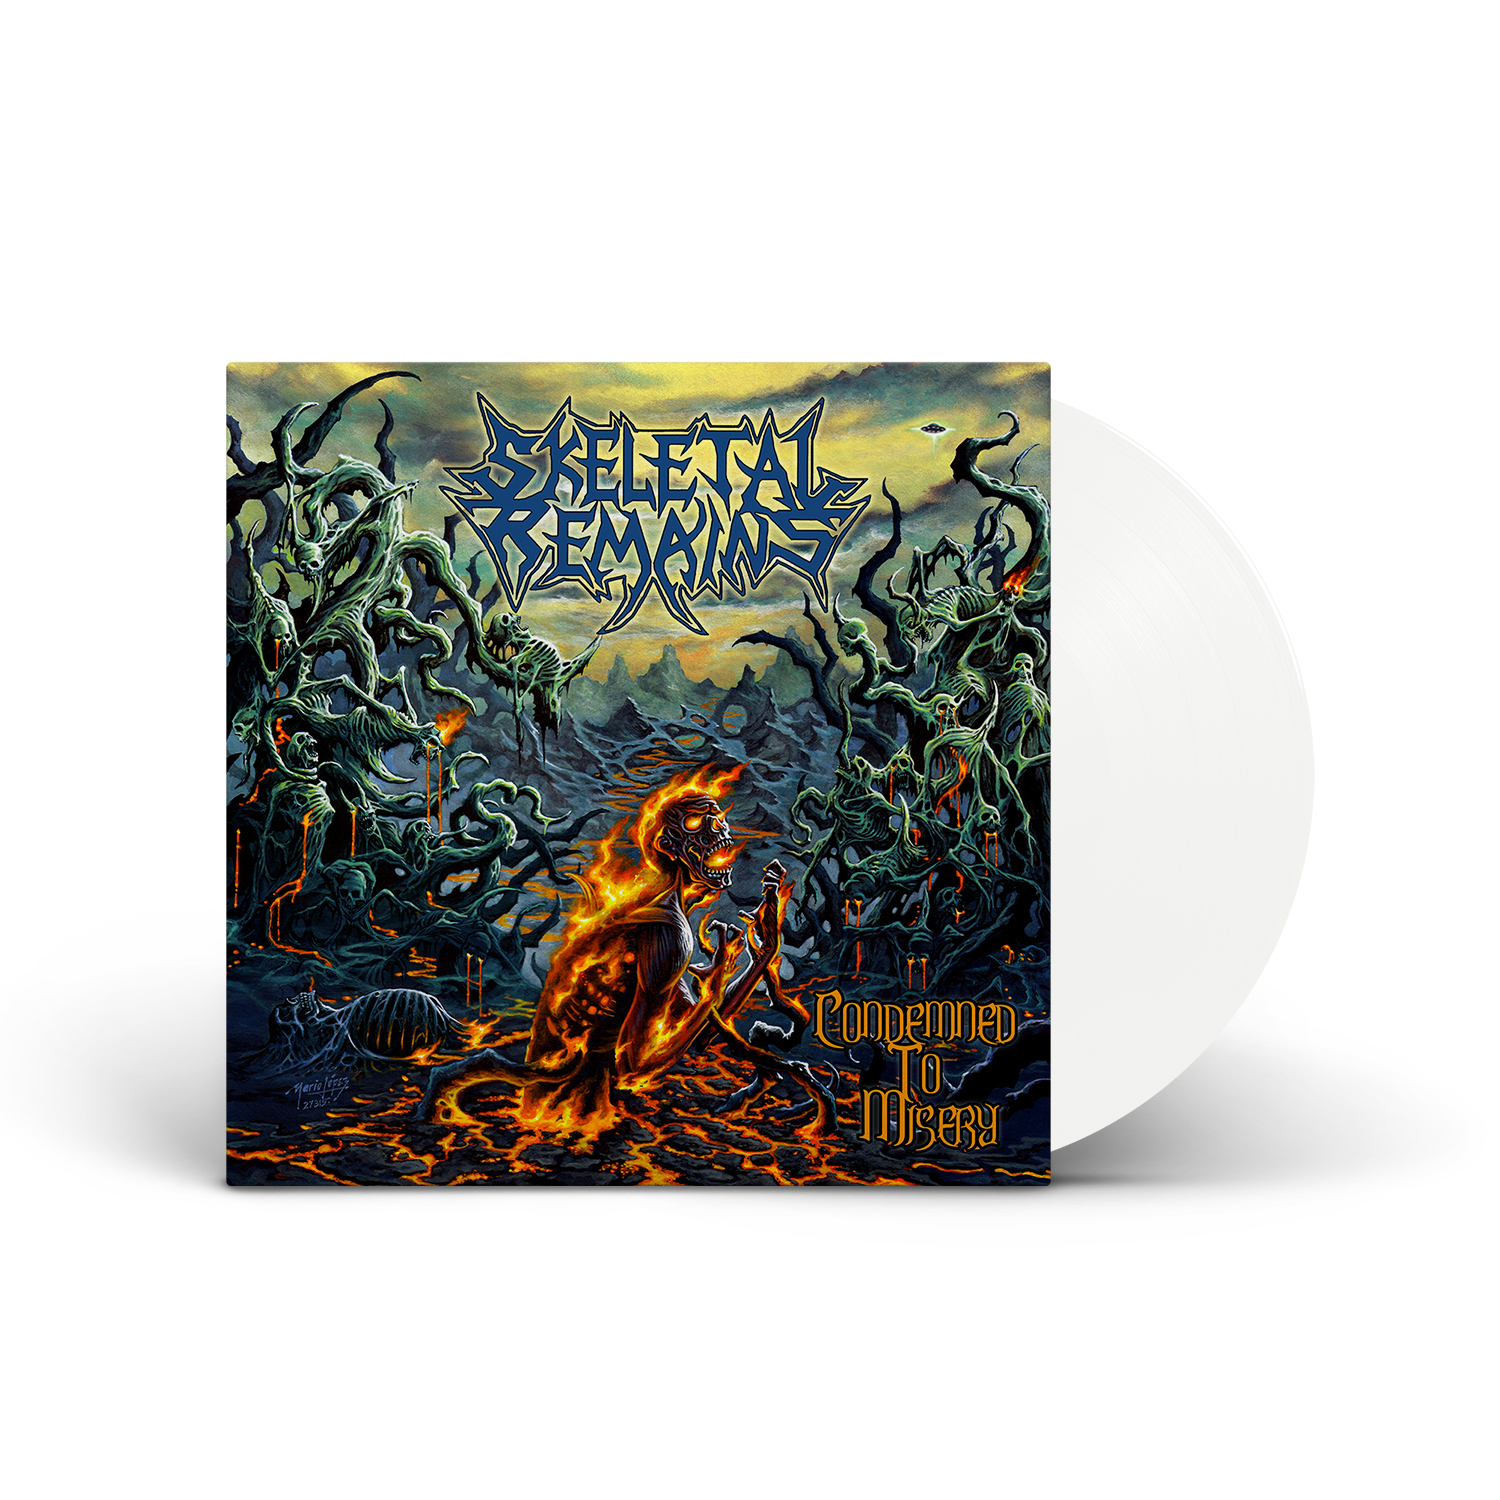 Skeletal Remains - Condemned To Misery (Re-issue 2021) Ultra Clear Vinyl LP